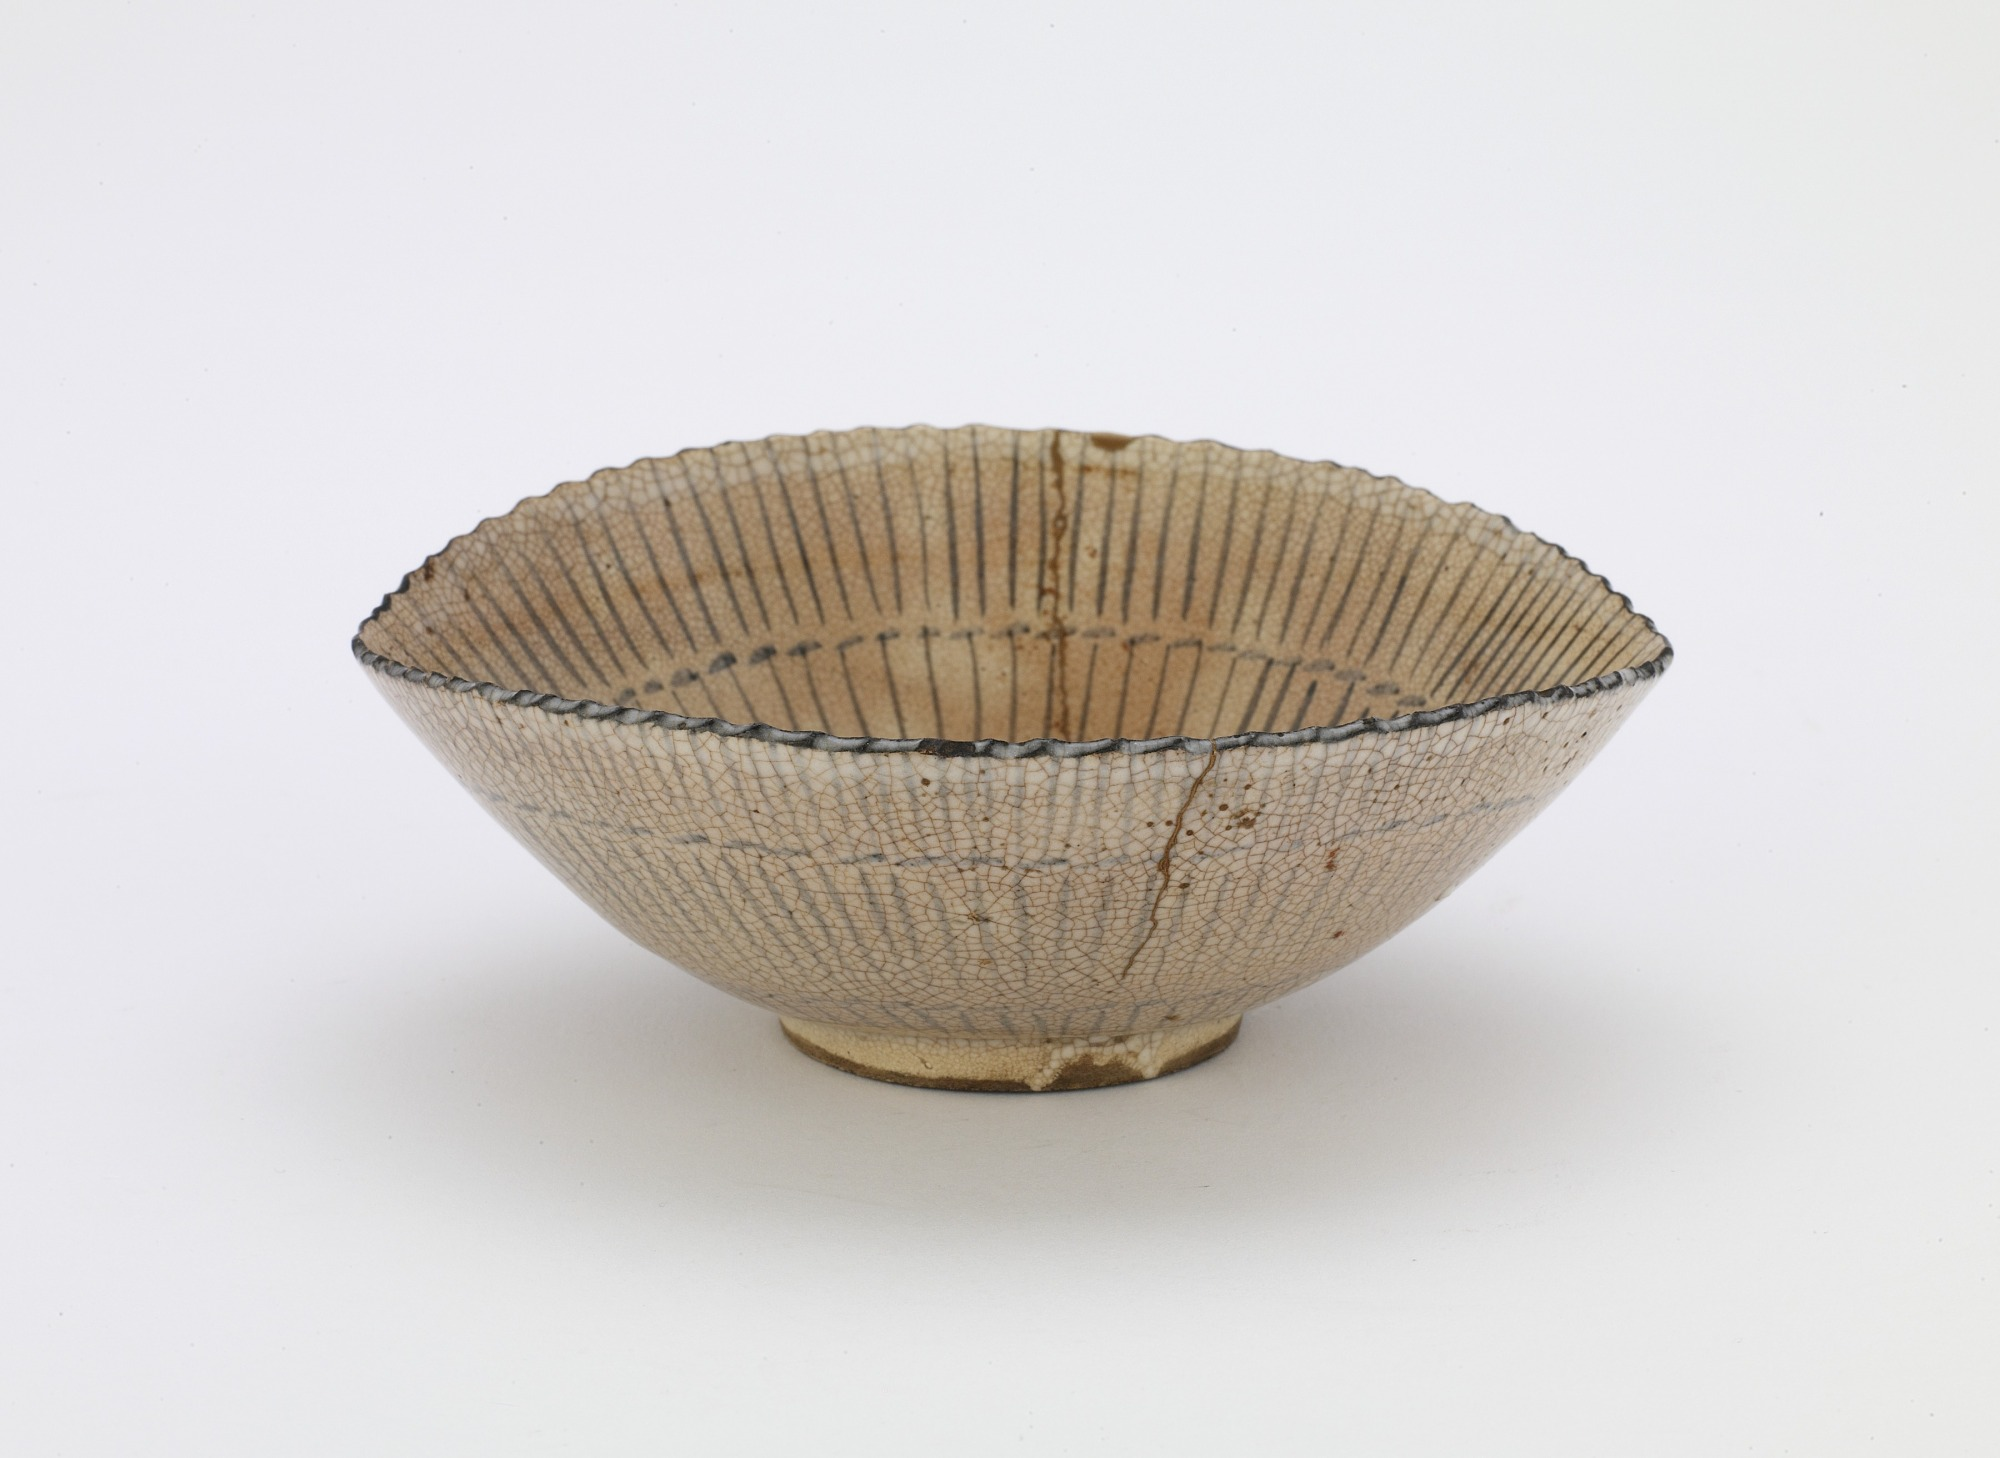 3/4 profile: Kyoto ware individual serving bowl in shape of sedge hat, with mark Kiyomizu